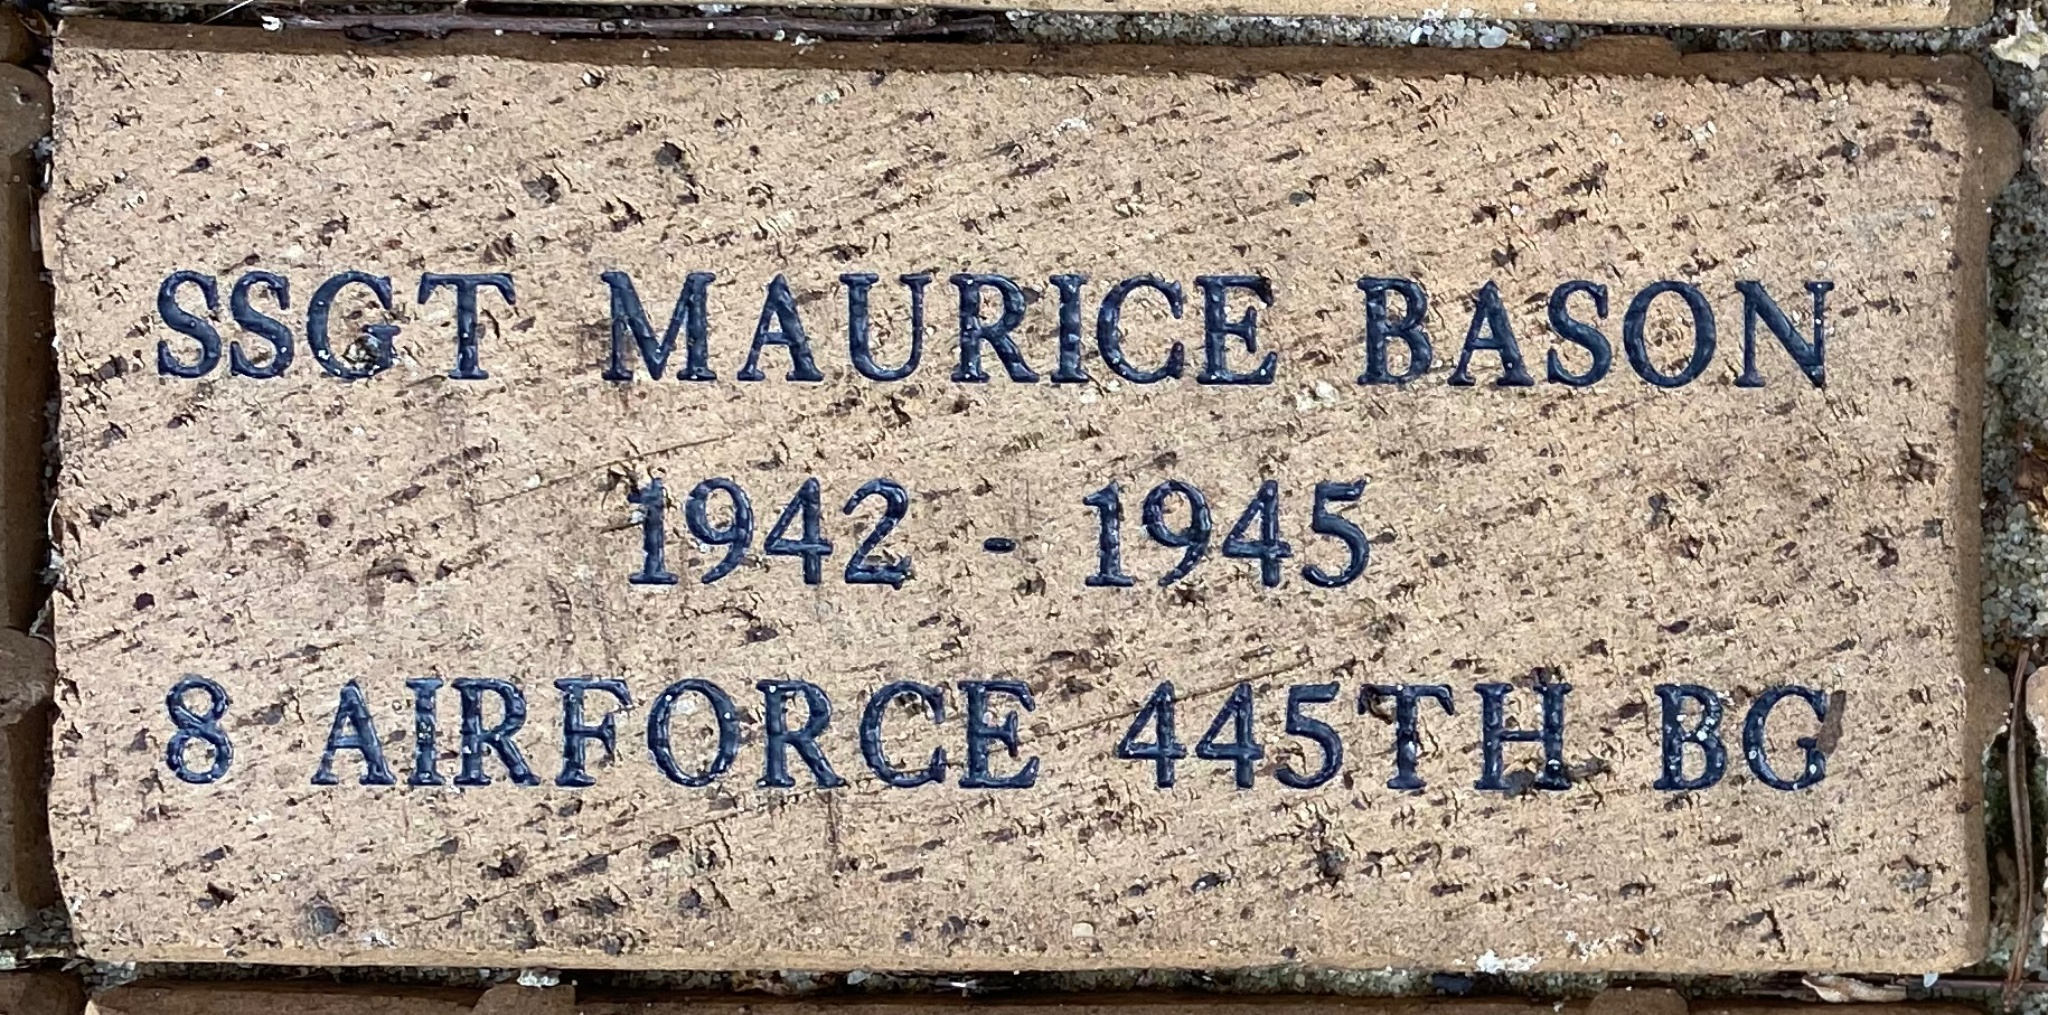 SSGT MAURICE BASON 1942-1945 8 AIRFORCE 445TH BG